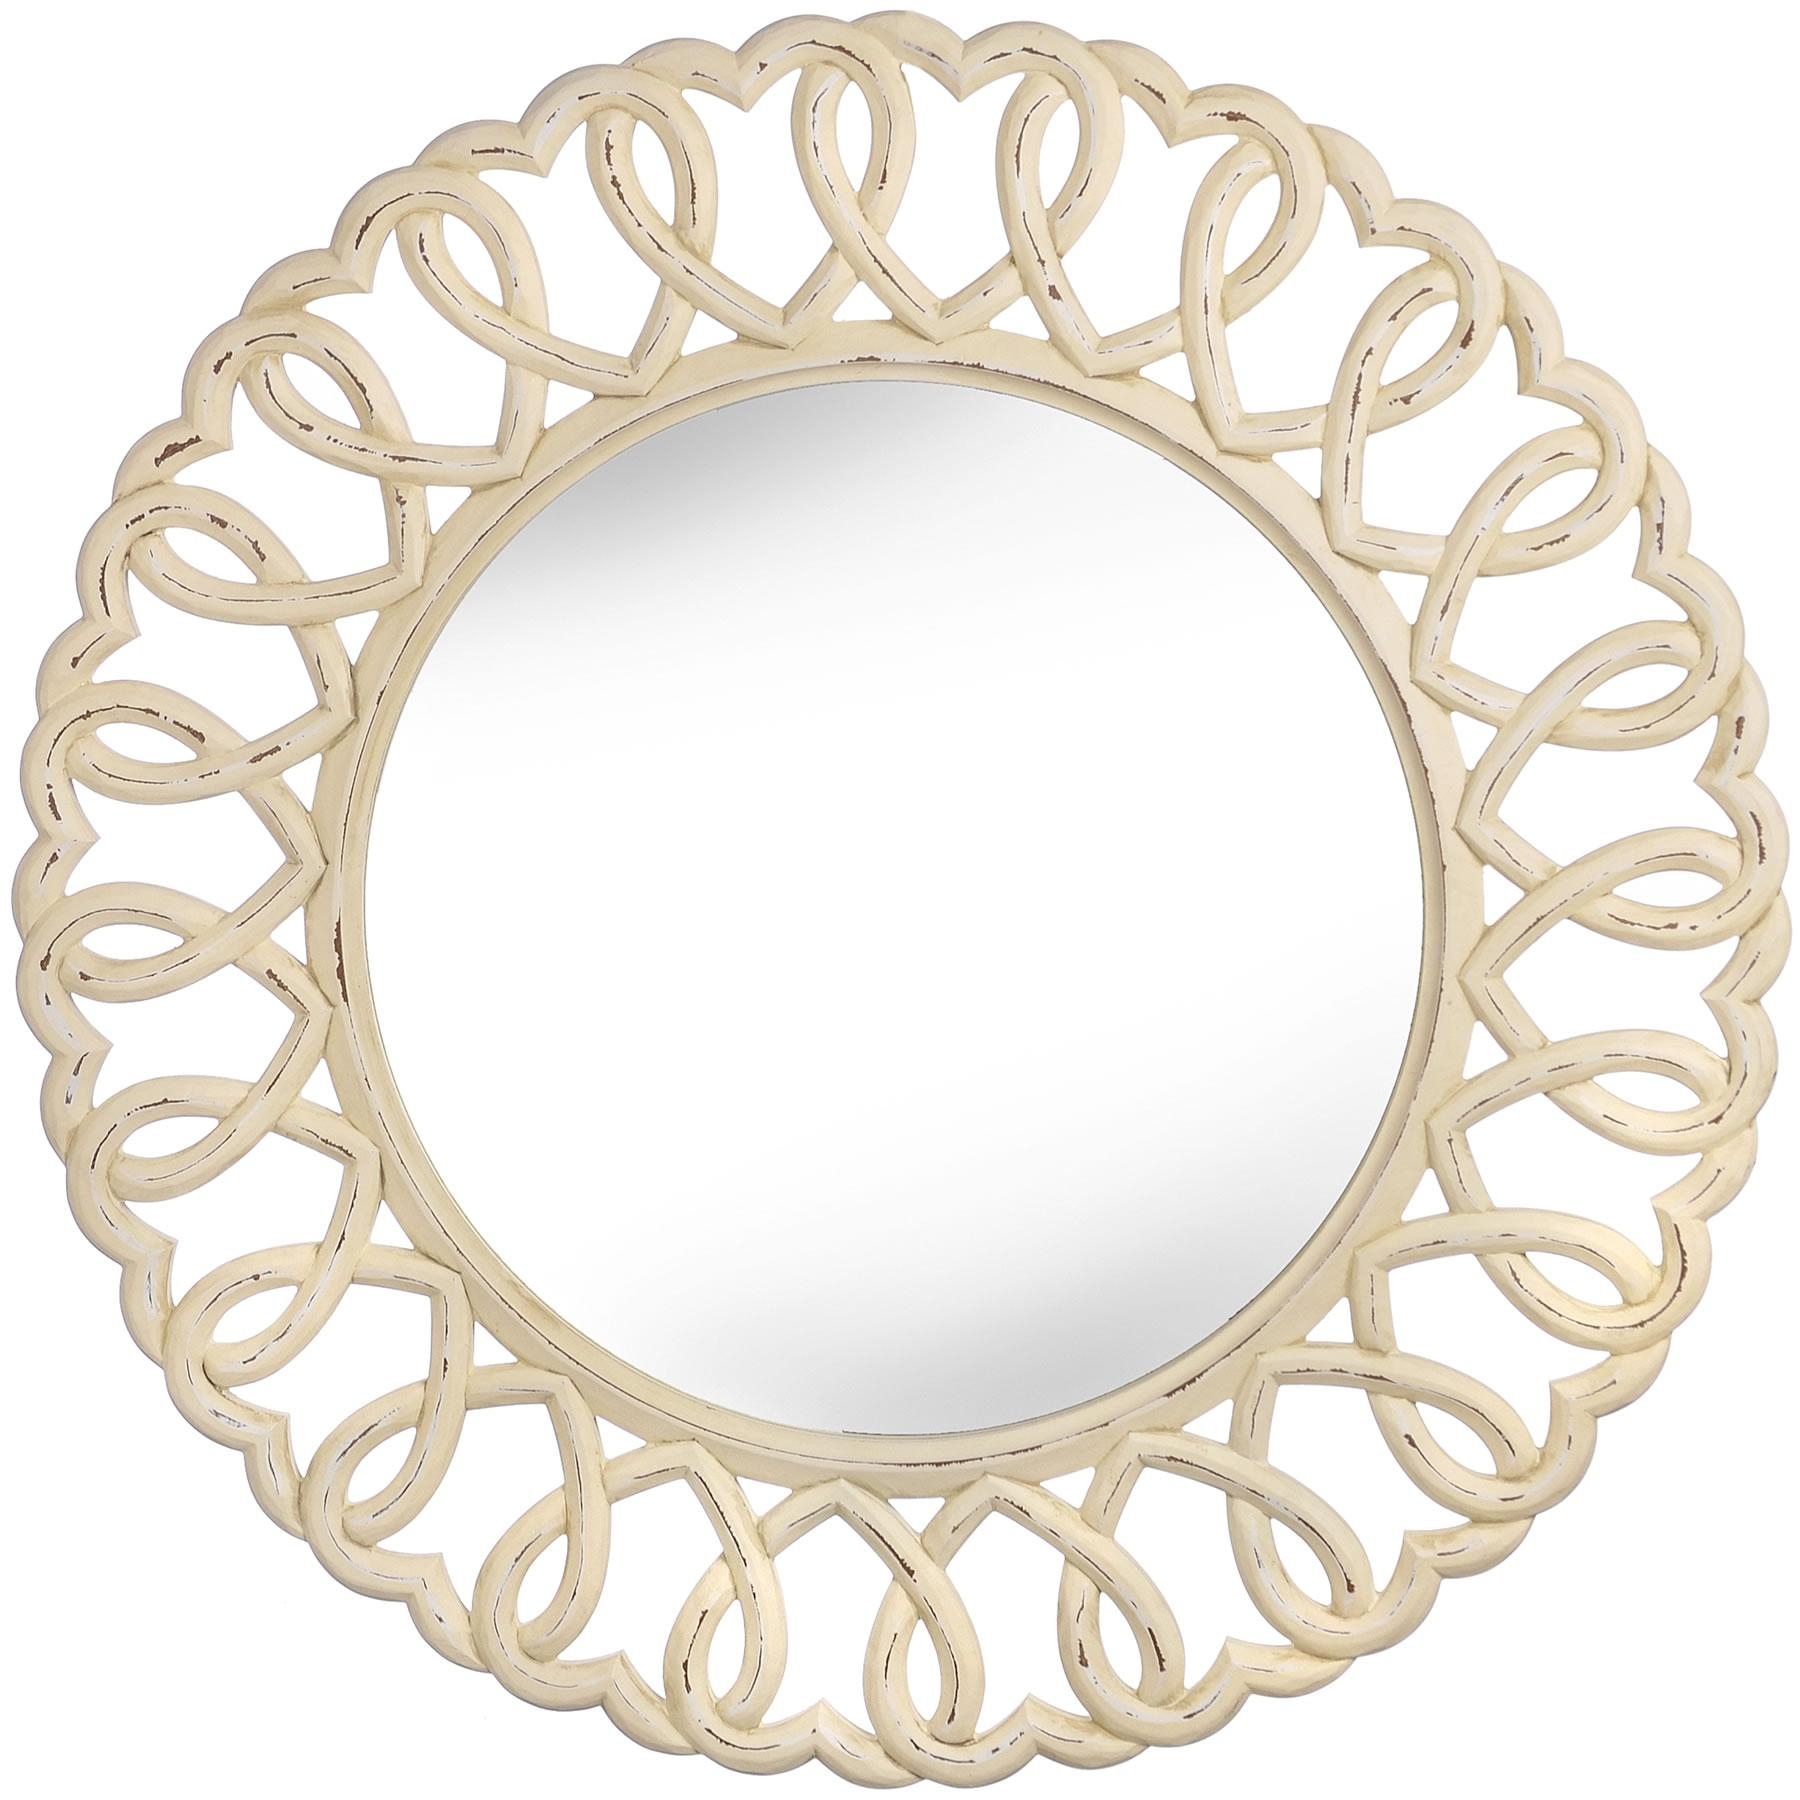 Olivia Heart Wall Mirror, Stunning Large Mirror 90Cm, Round Wall Intended For Oval Cream Mirror (Image 11 of 20)